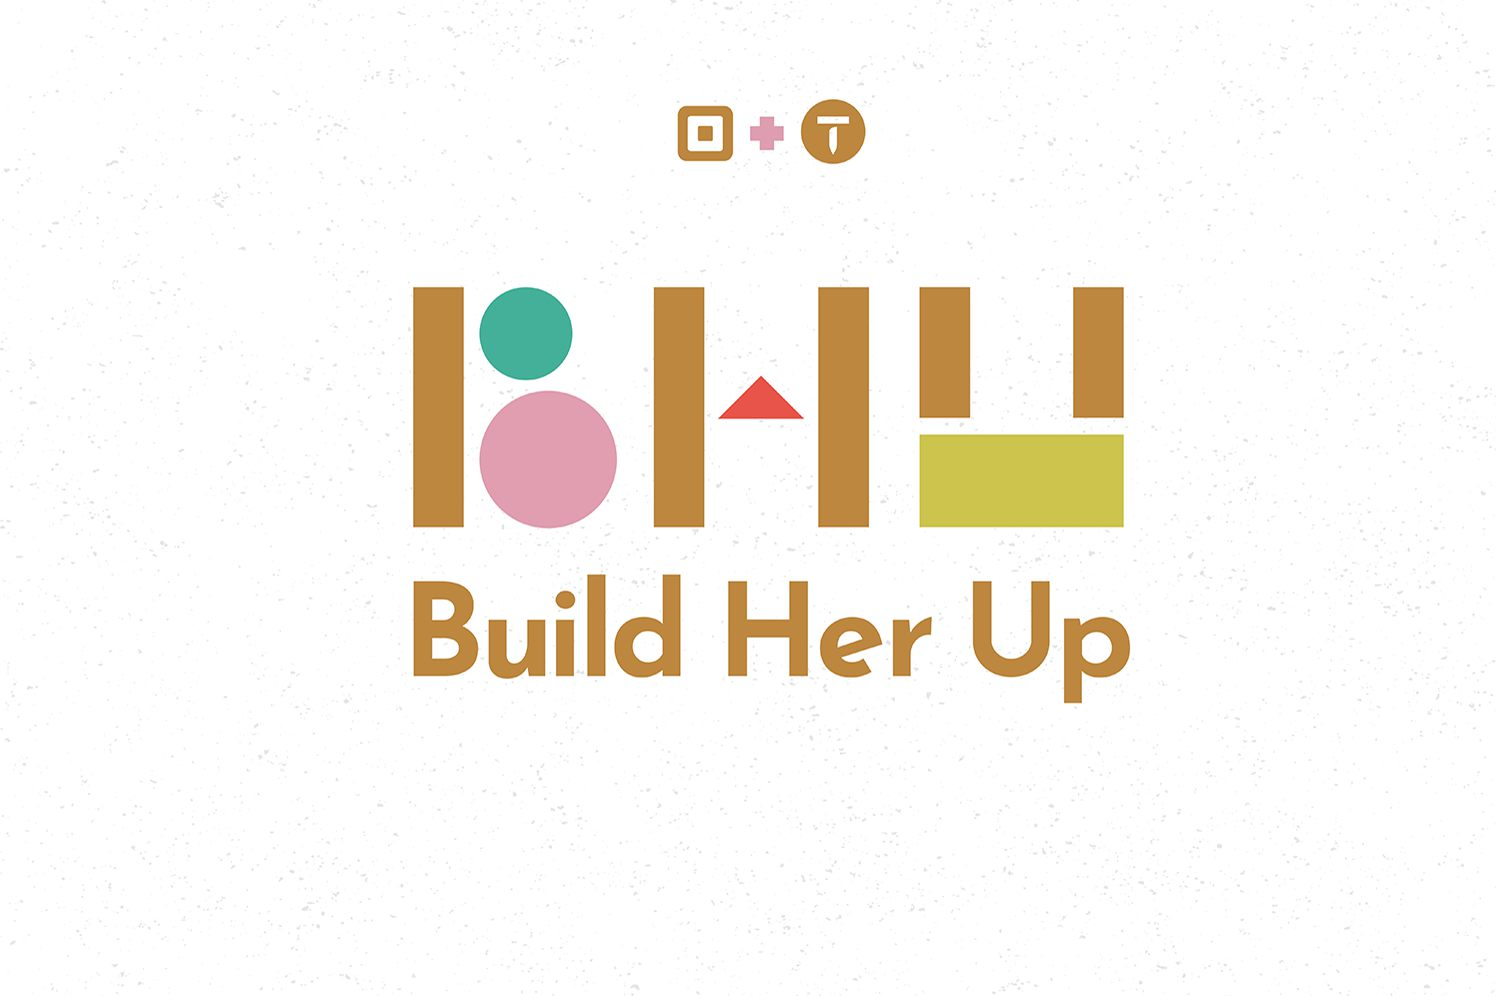 build her up 2019 graphic